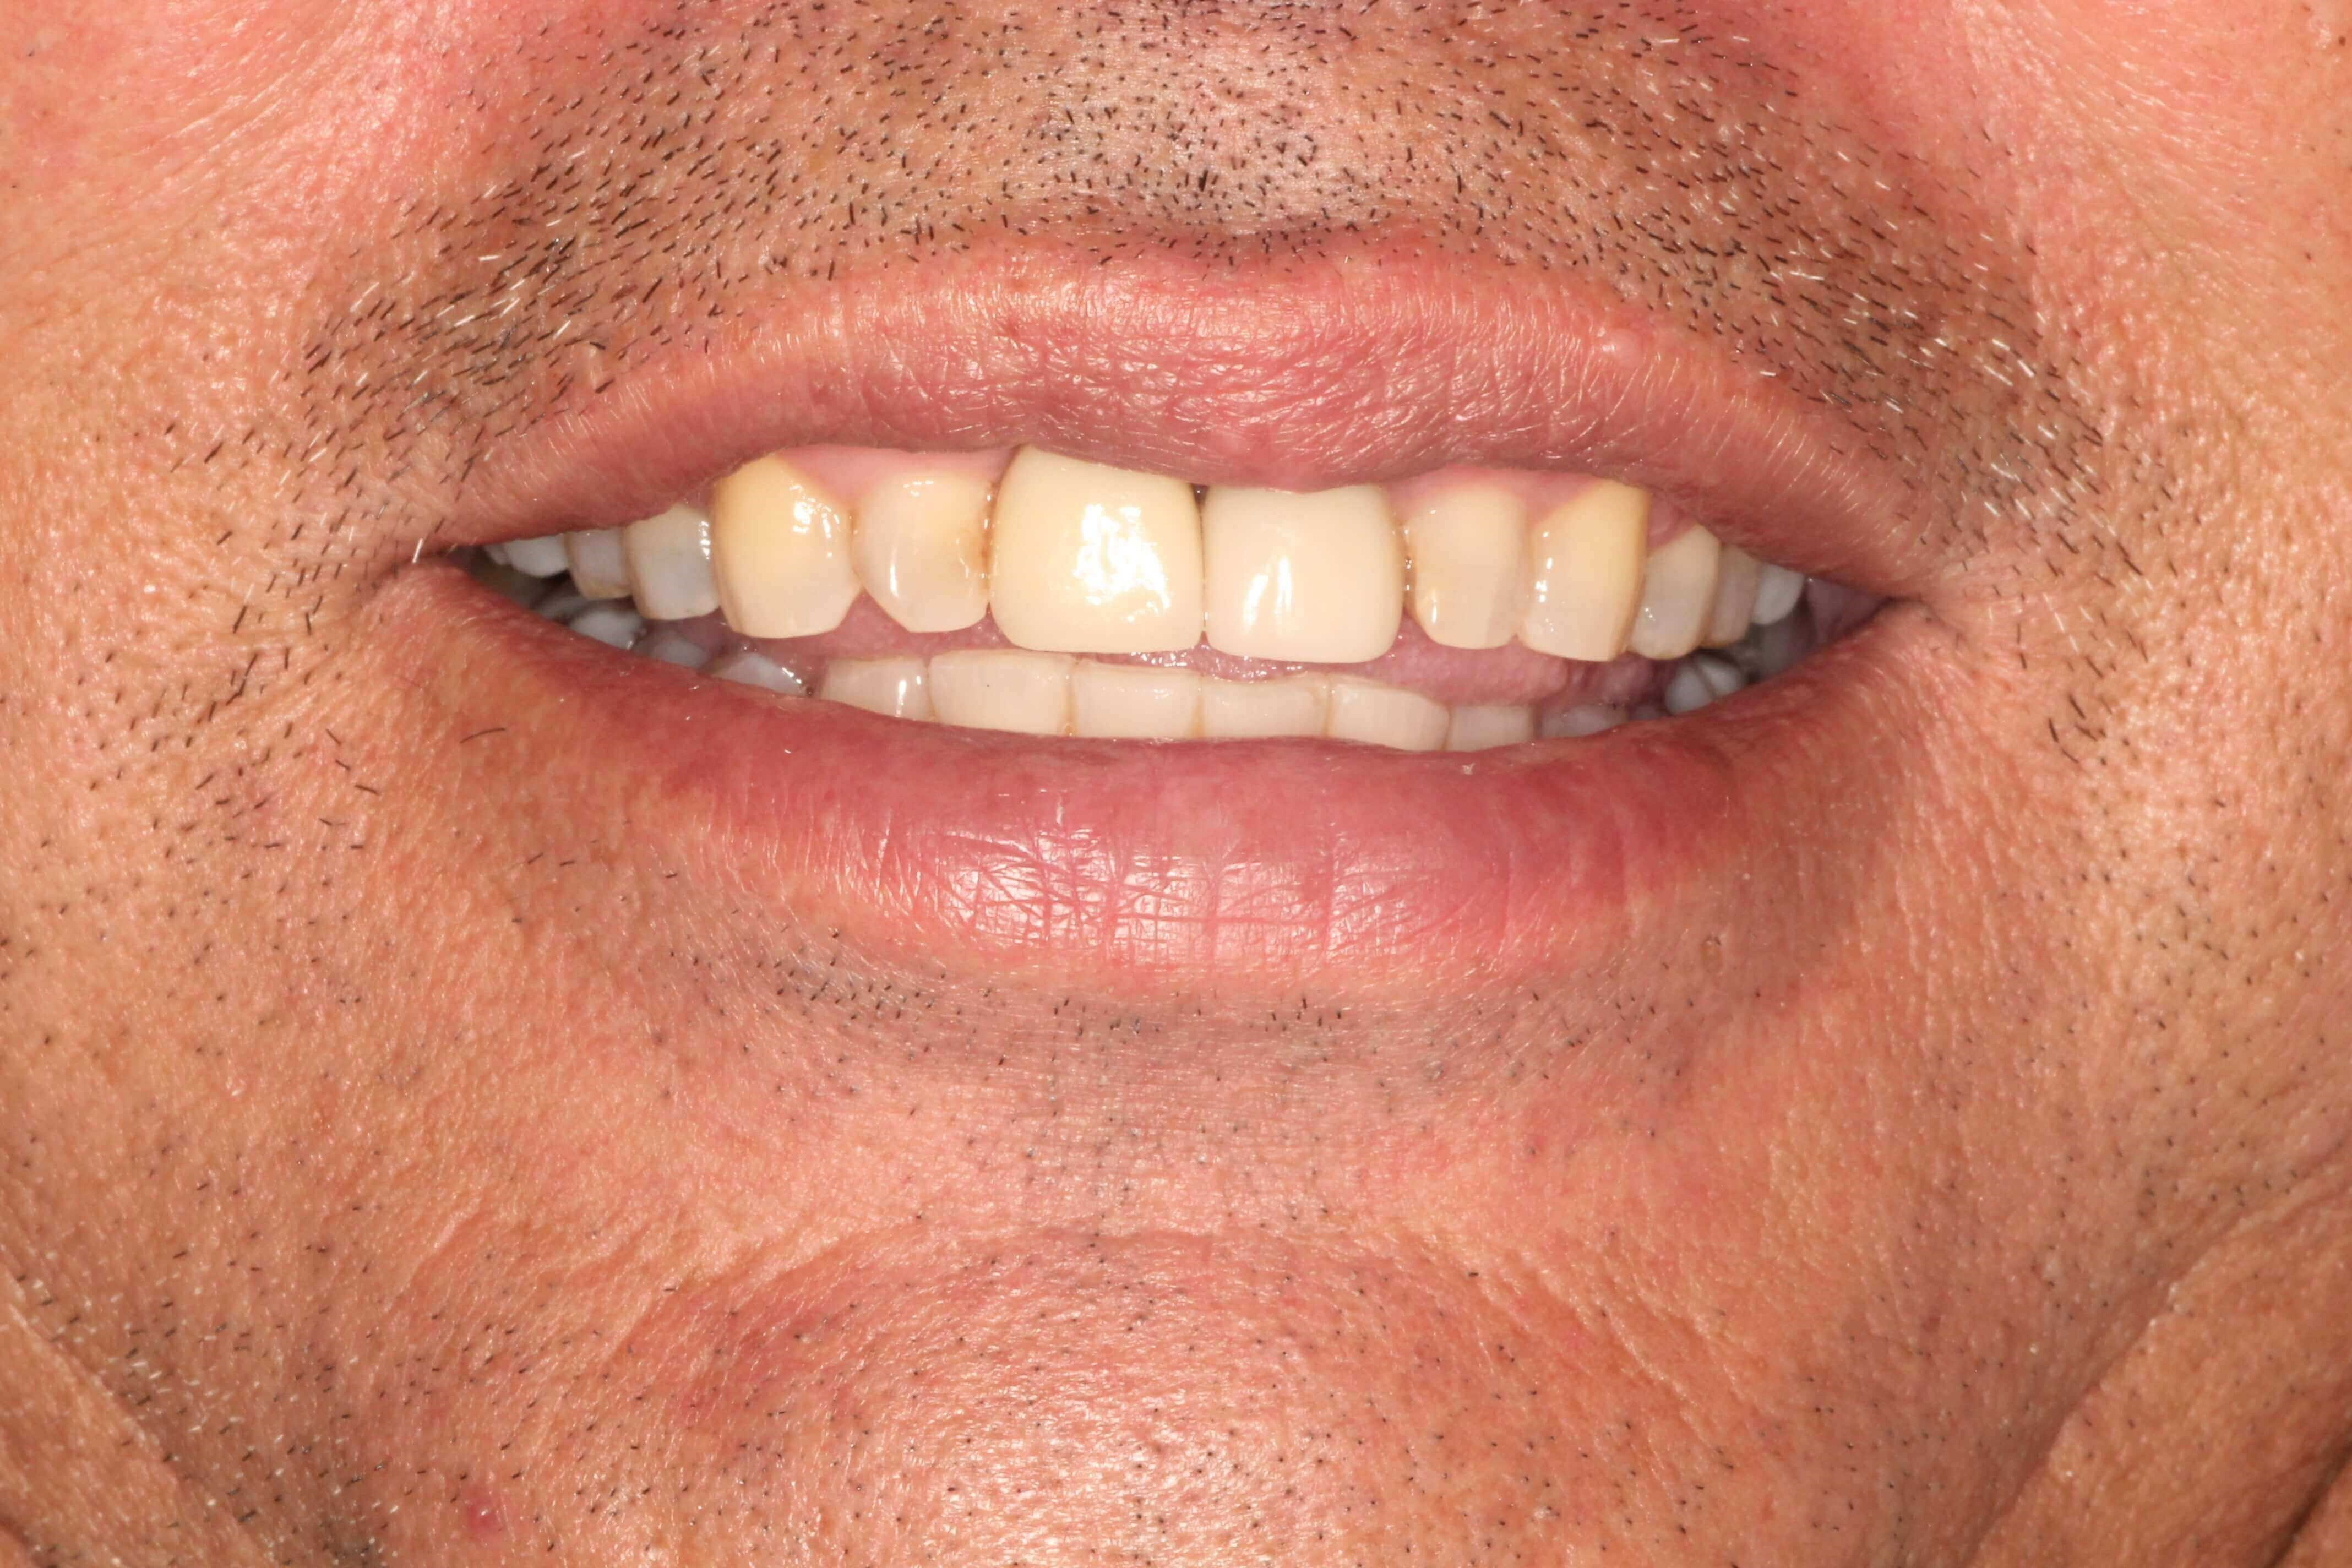 Dental Implants Crown Dental After Dental Implant and Crown